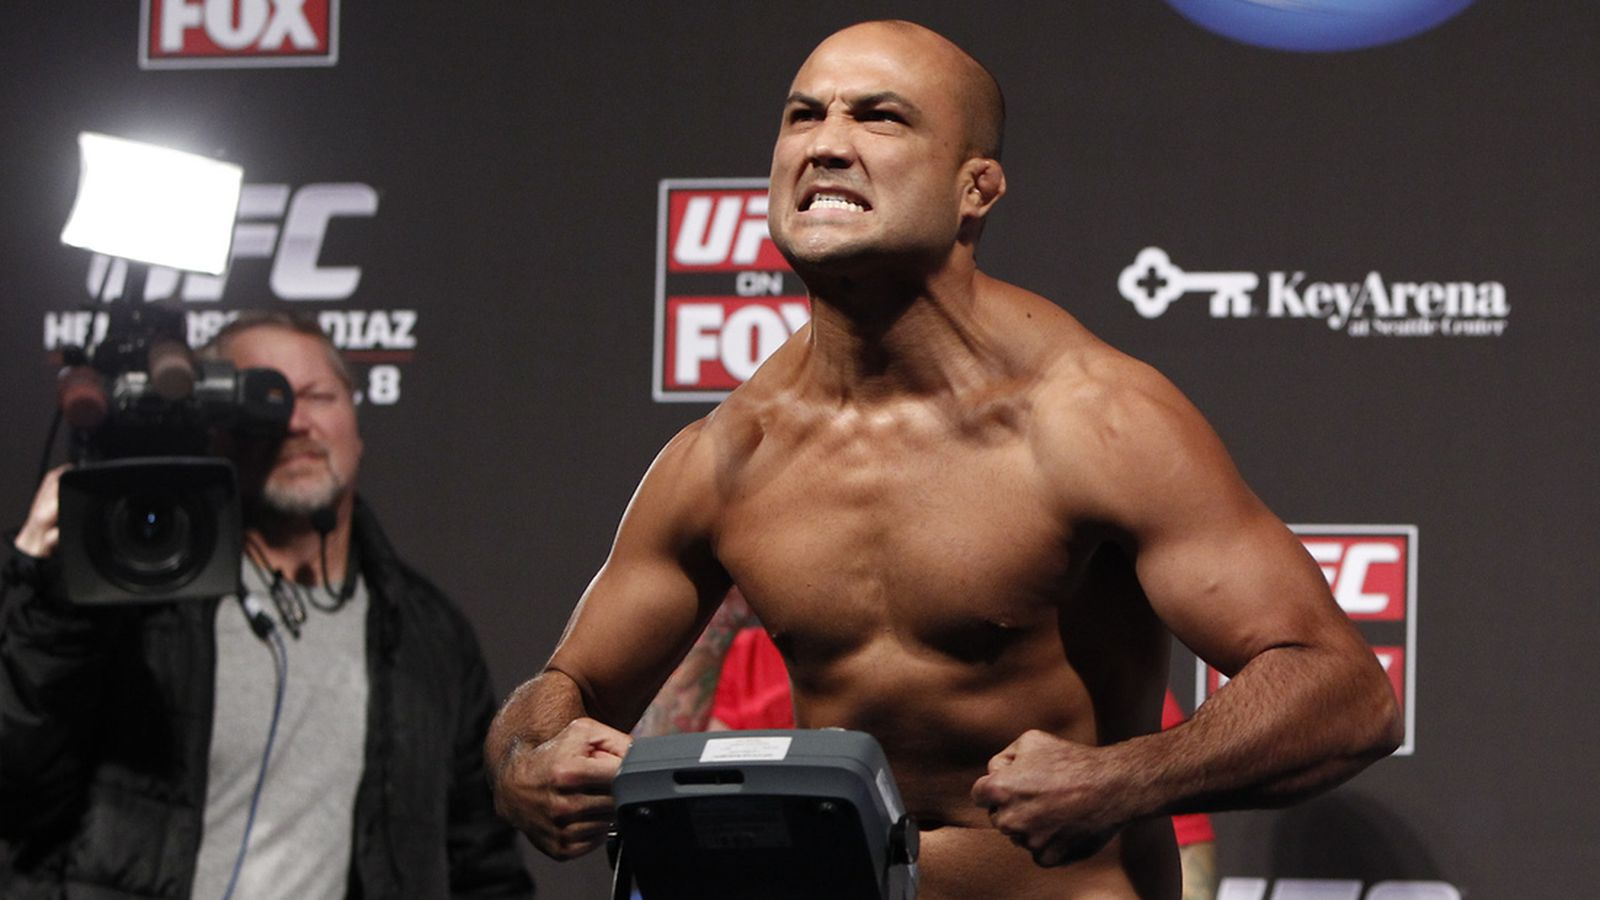 BJ Penn officially ends retirement: 'I want to go get that 145 ...